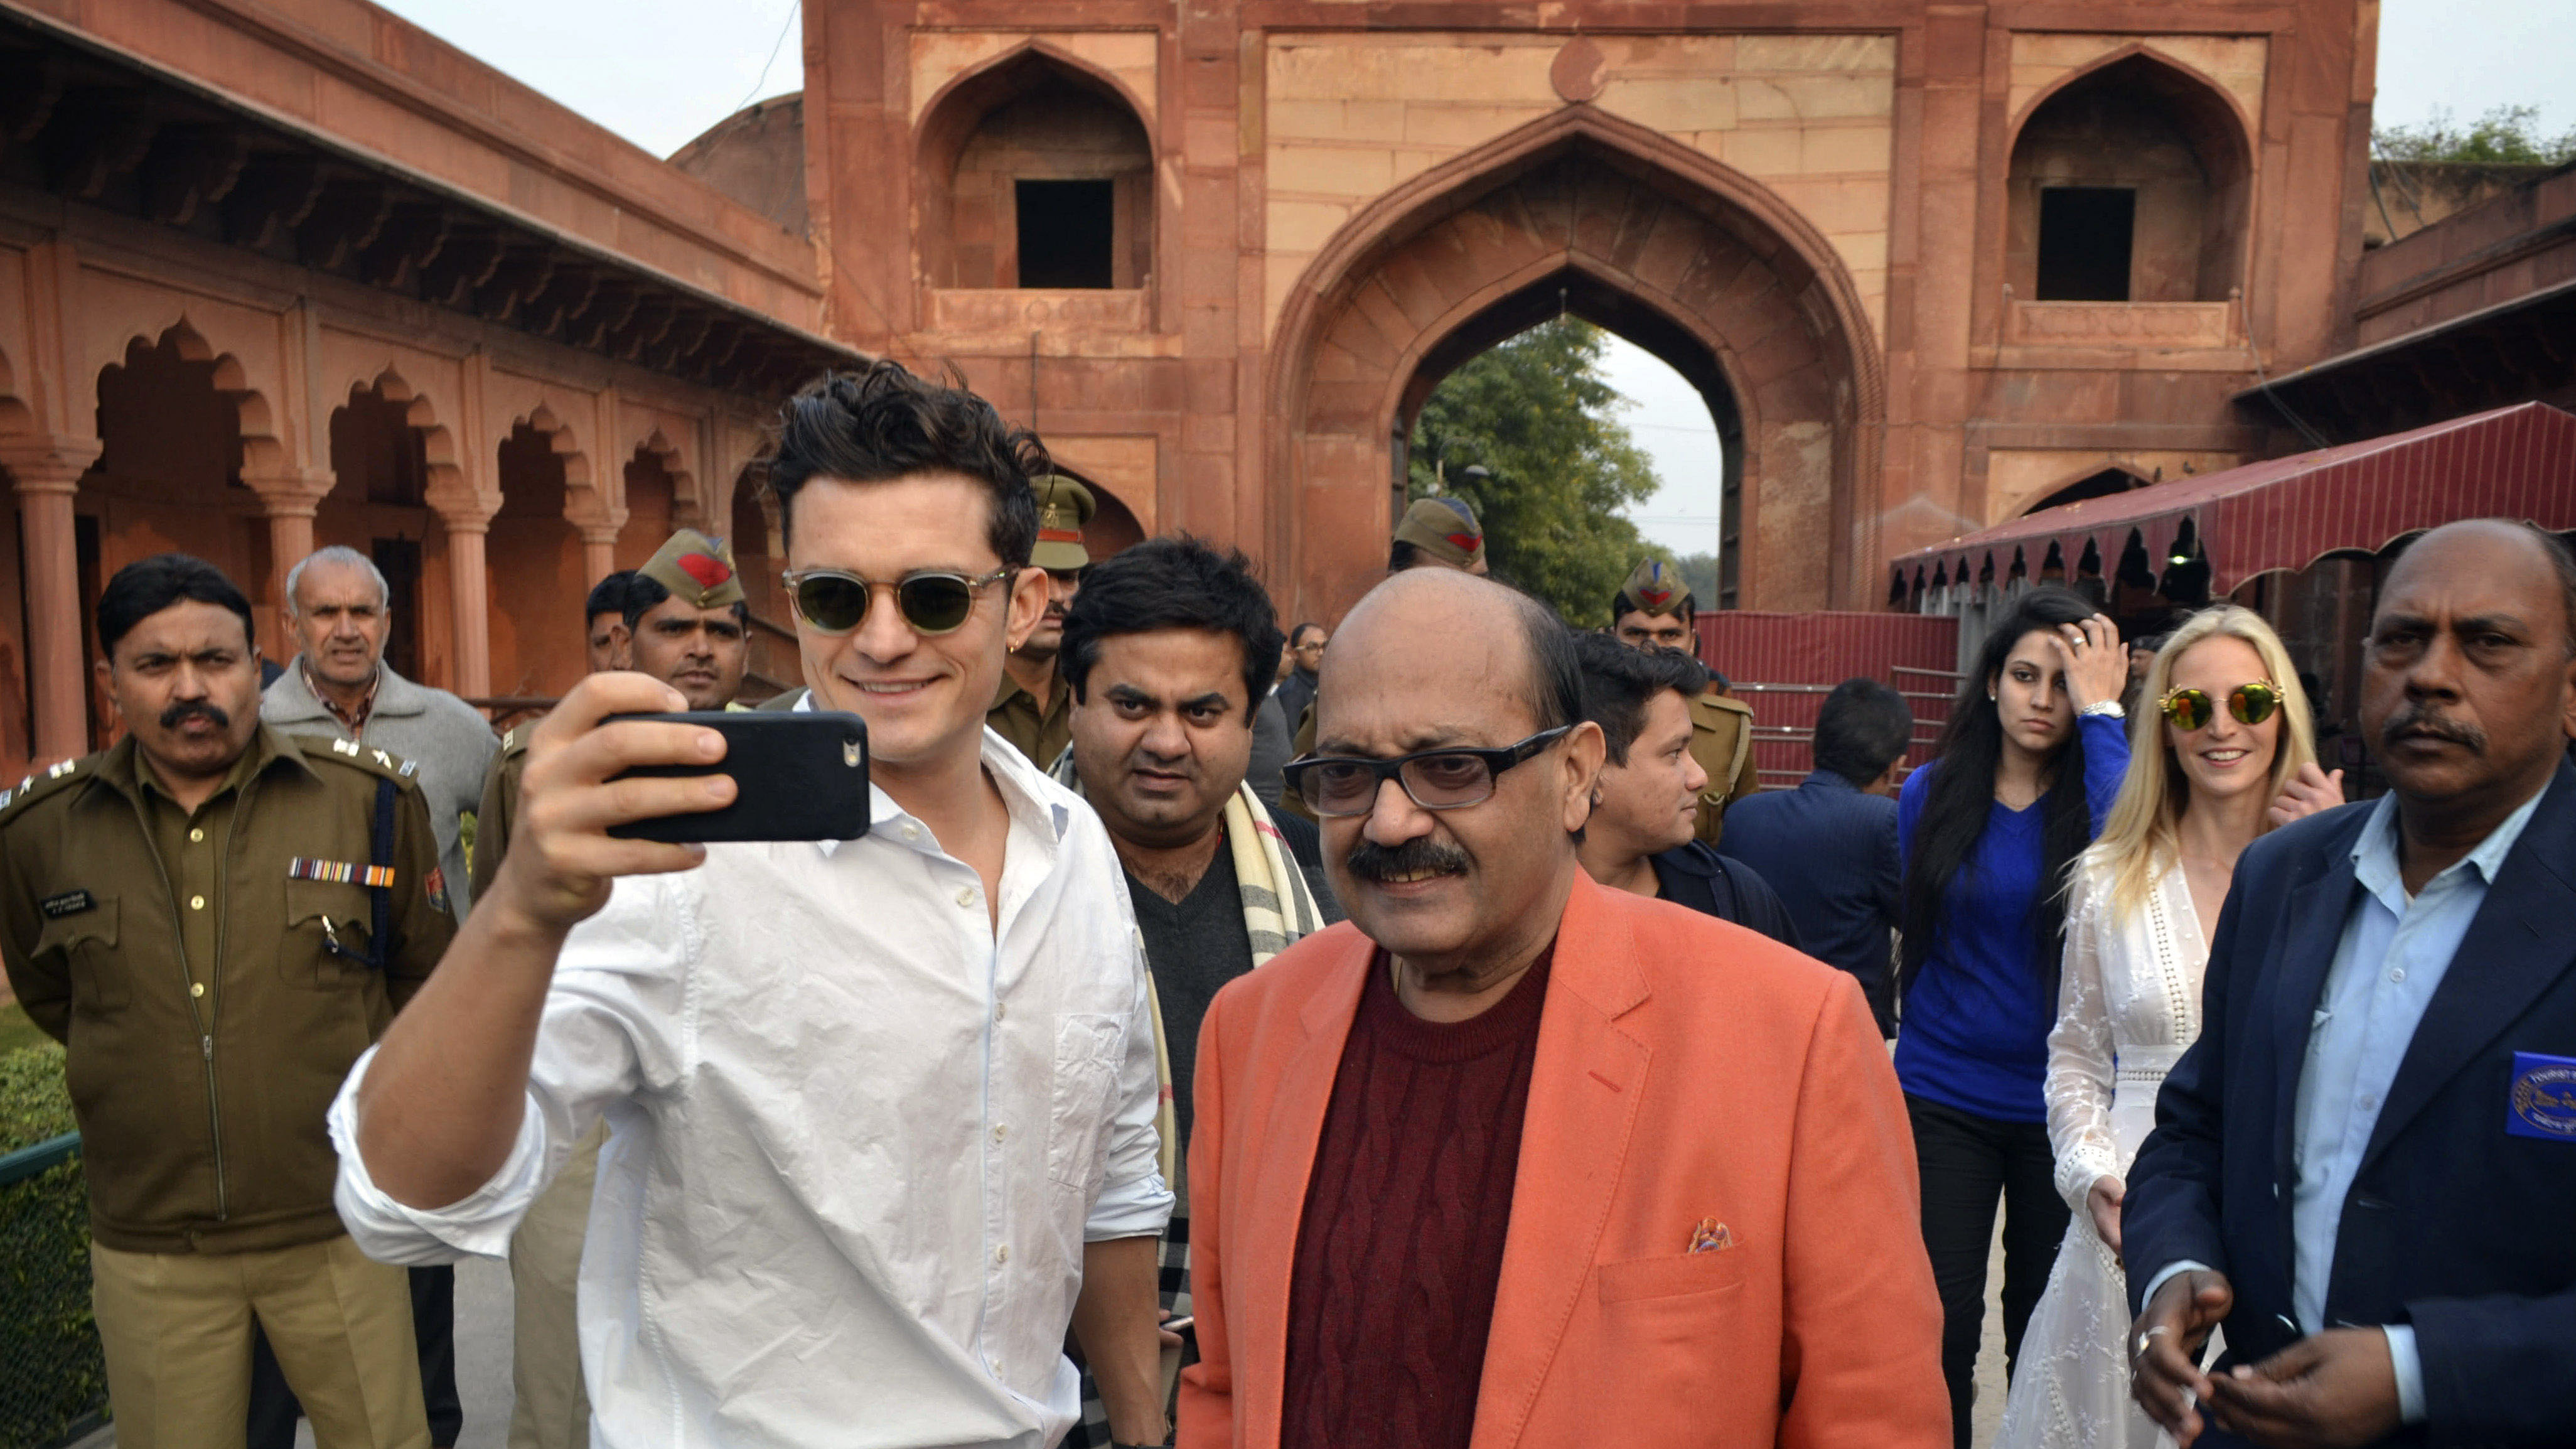 Orlando Bloom deported from India despite being invited by government